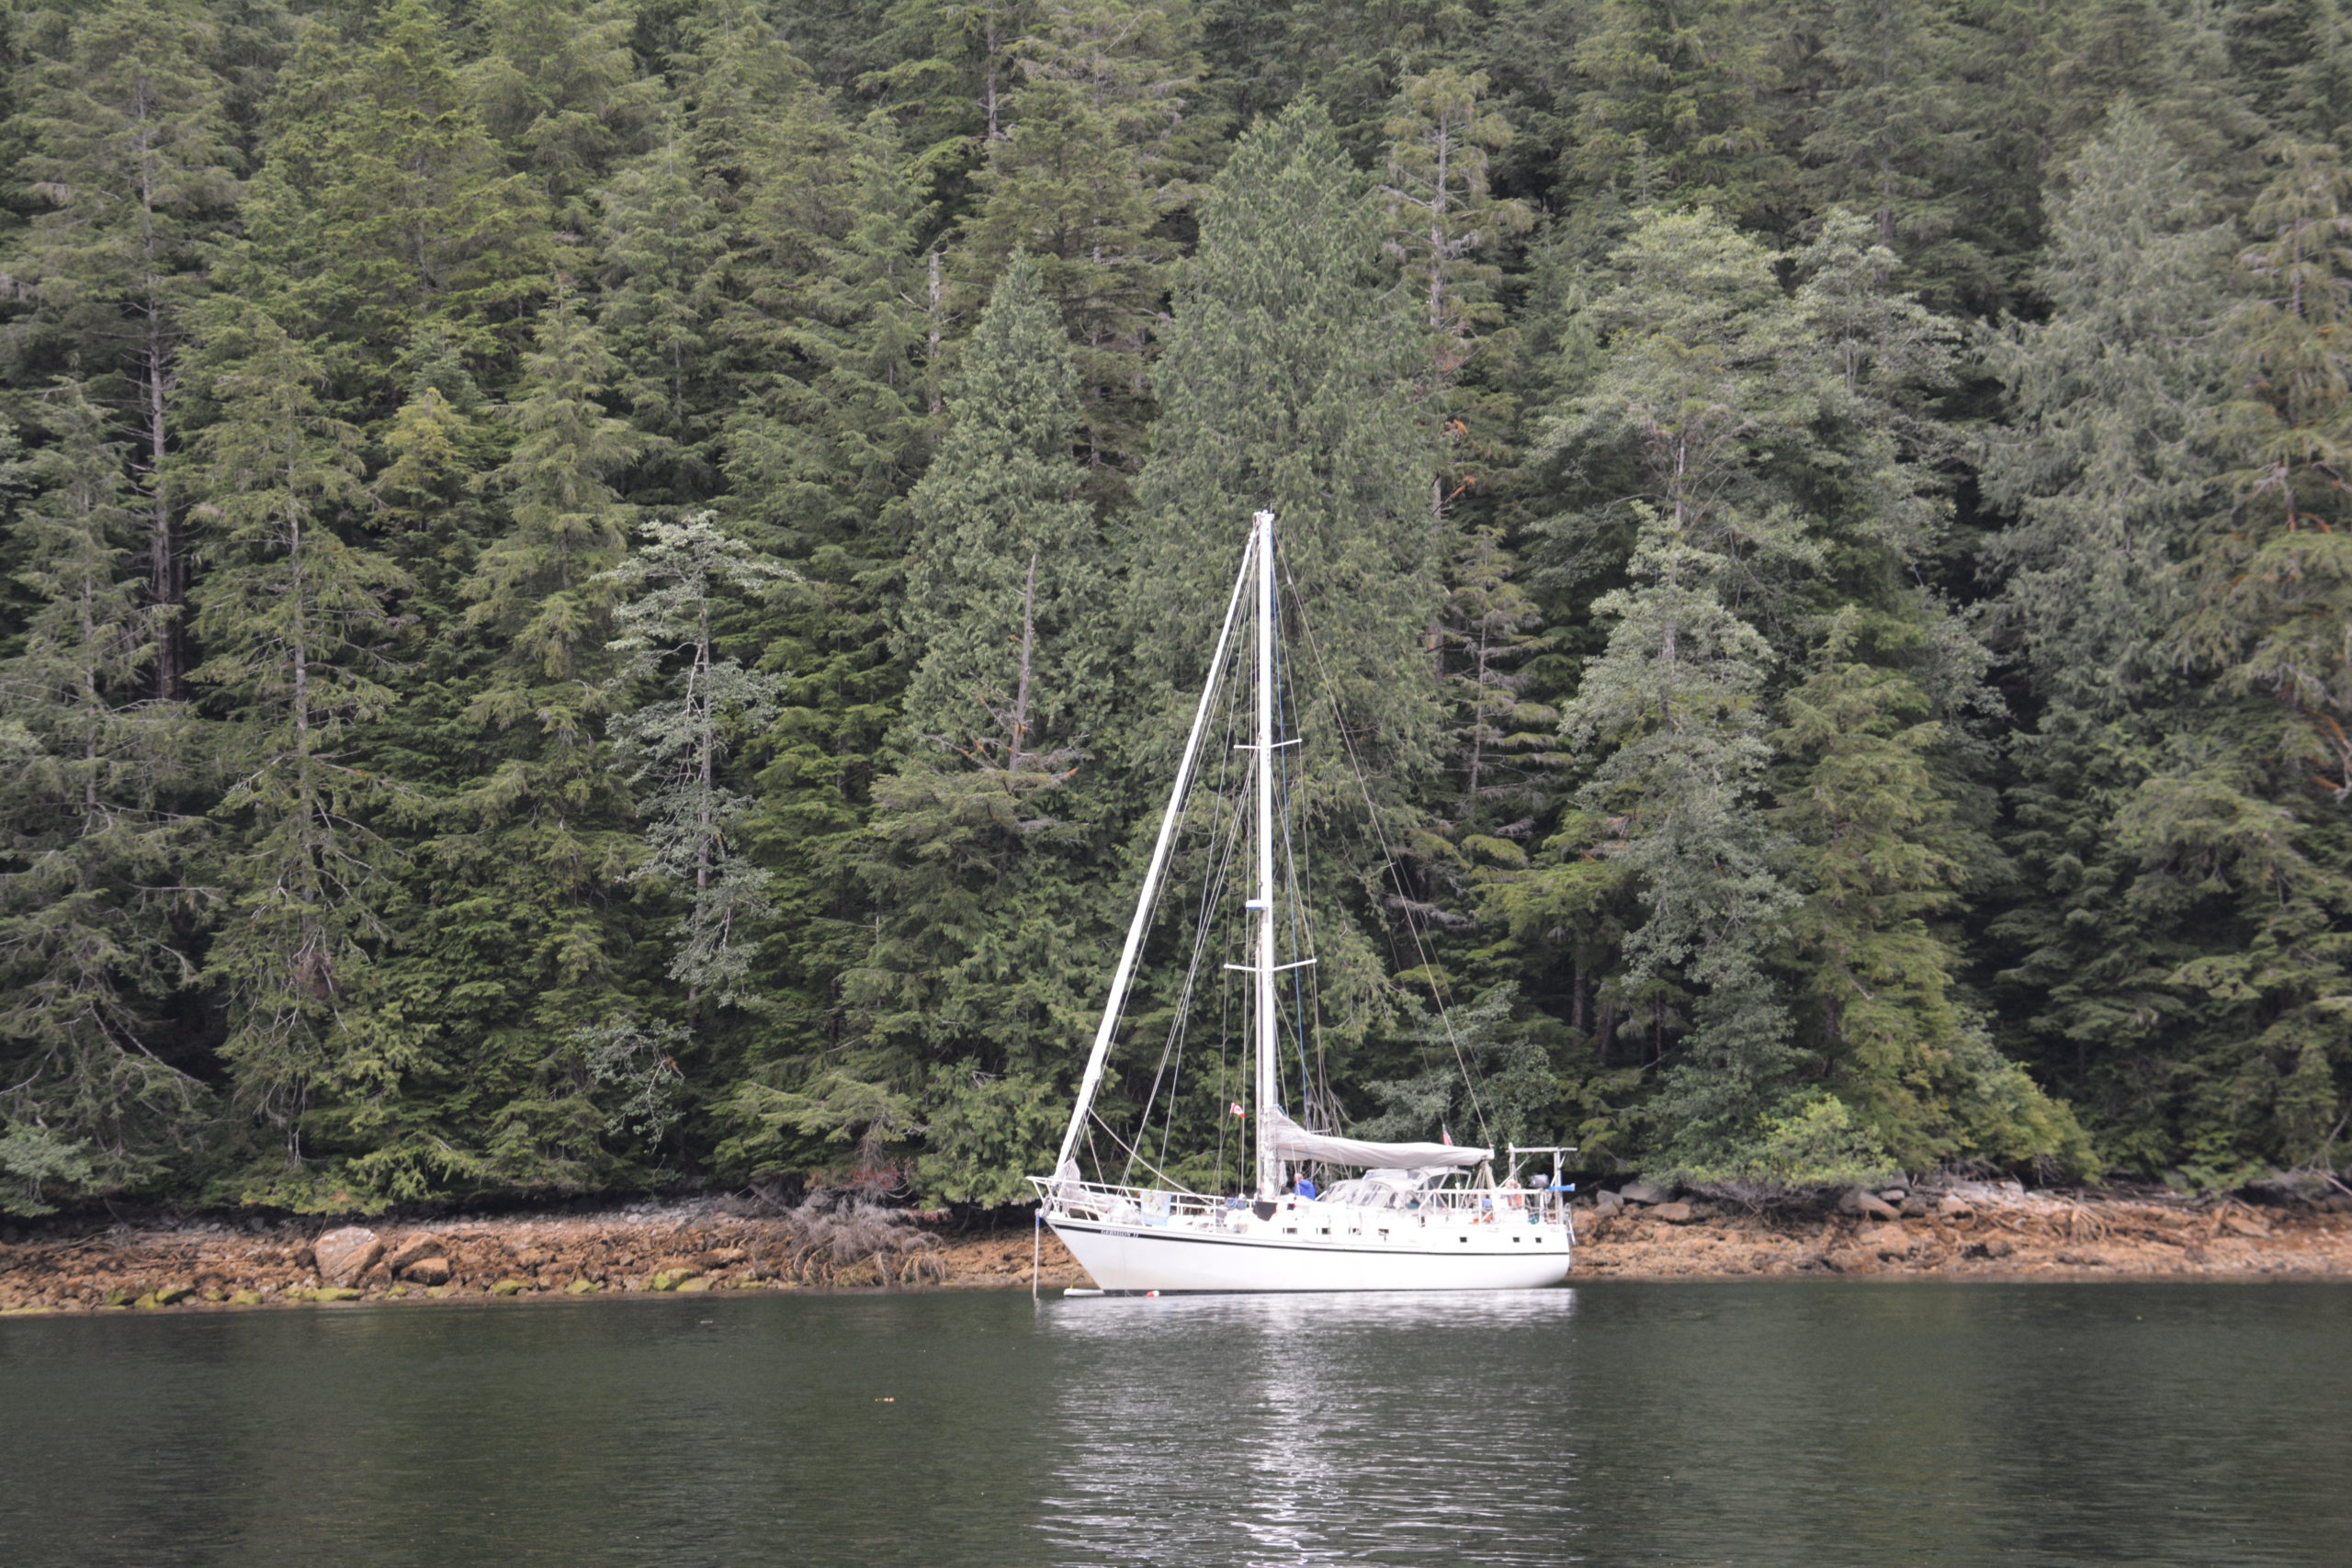 Gershon ll in Queen Charlotte Sound, BC 2019